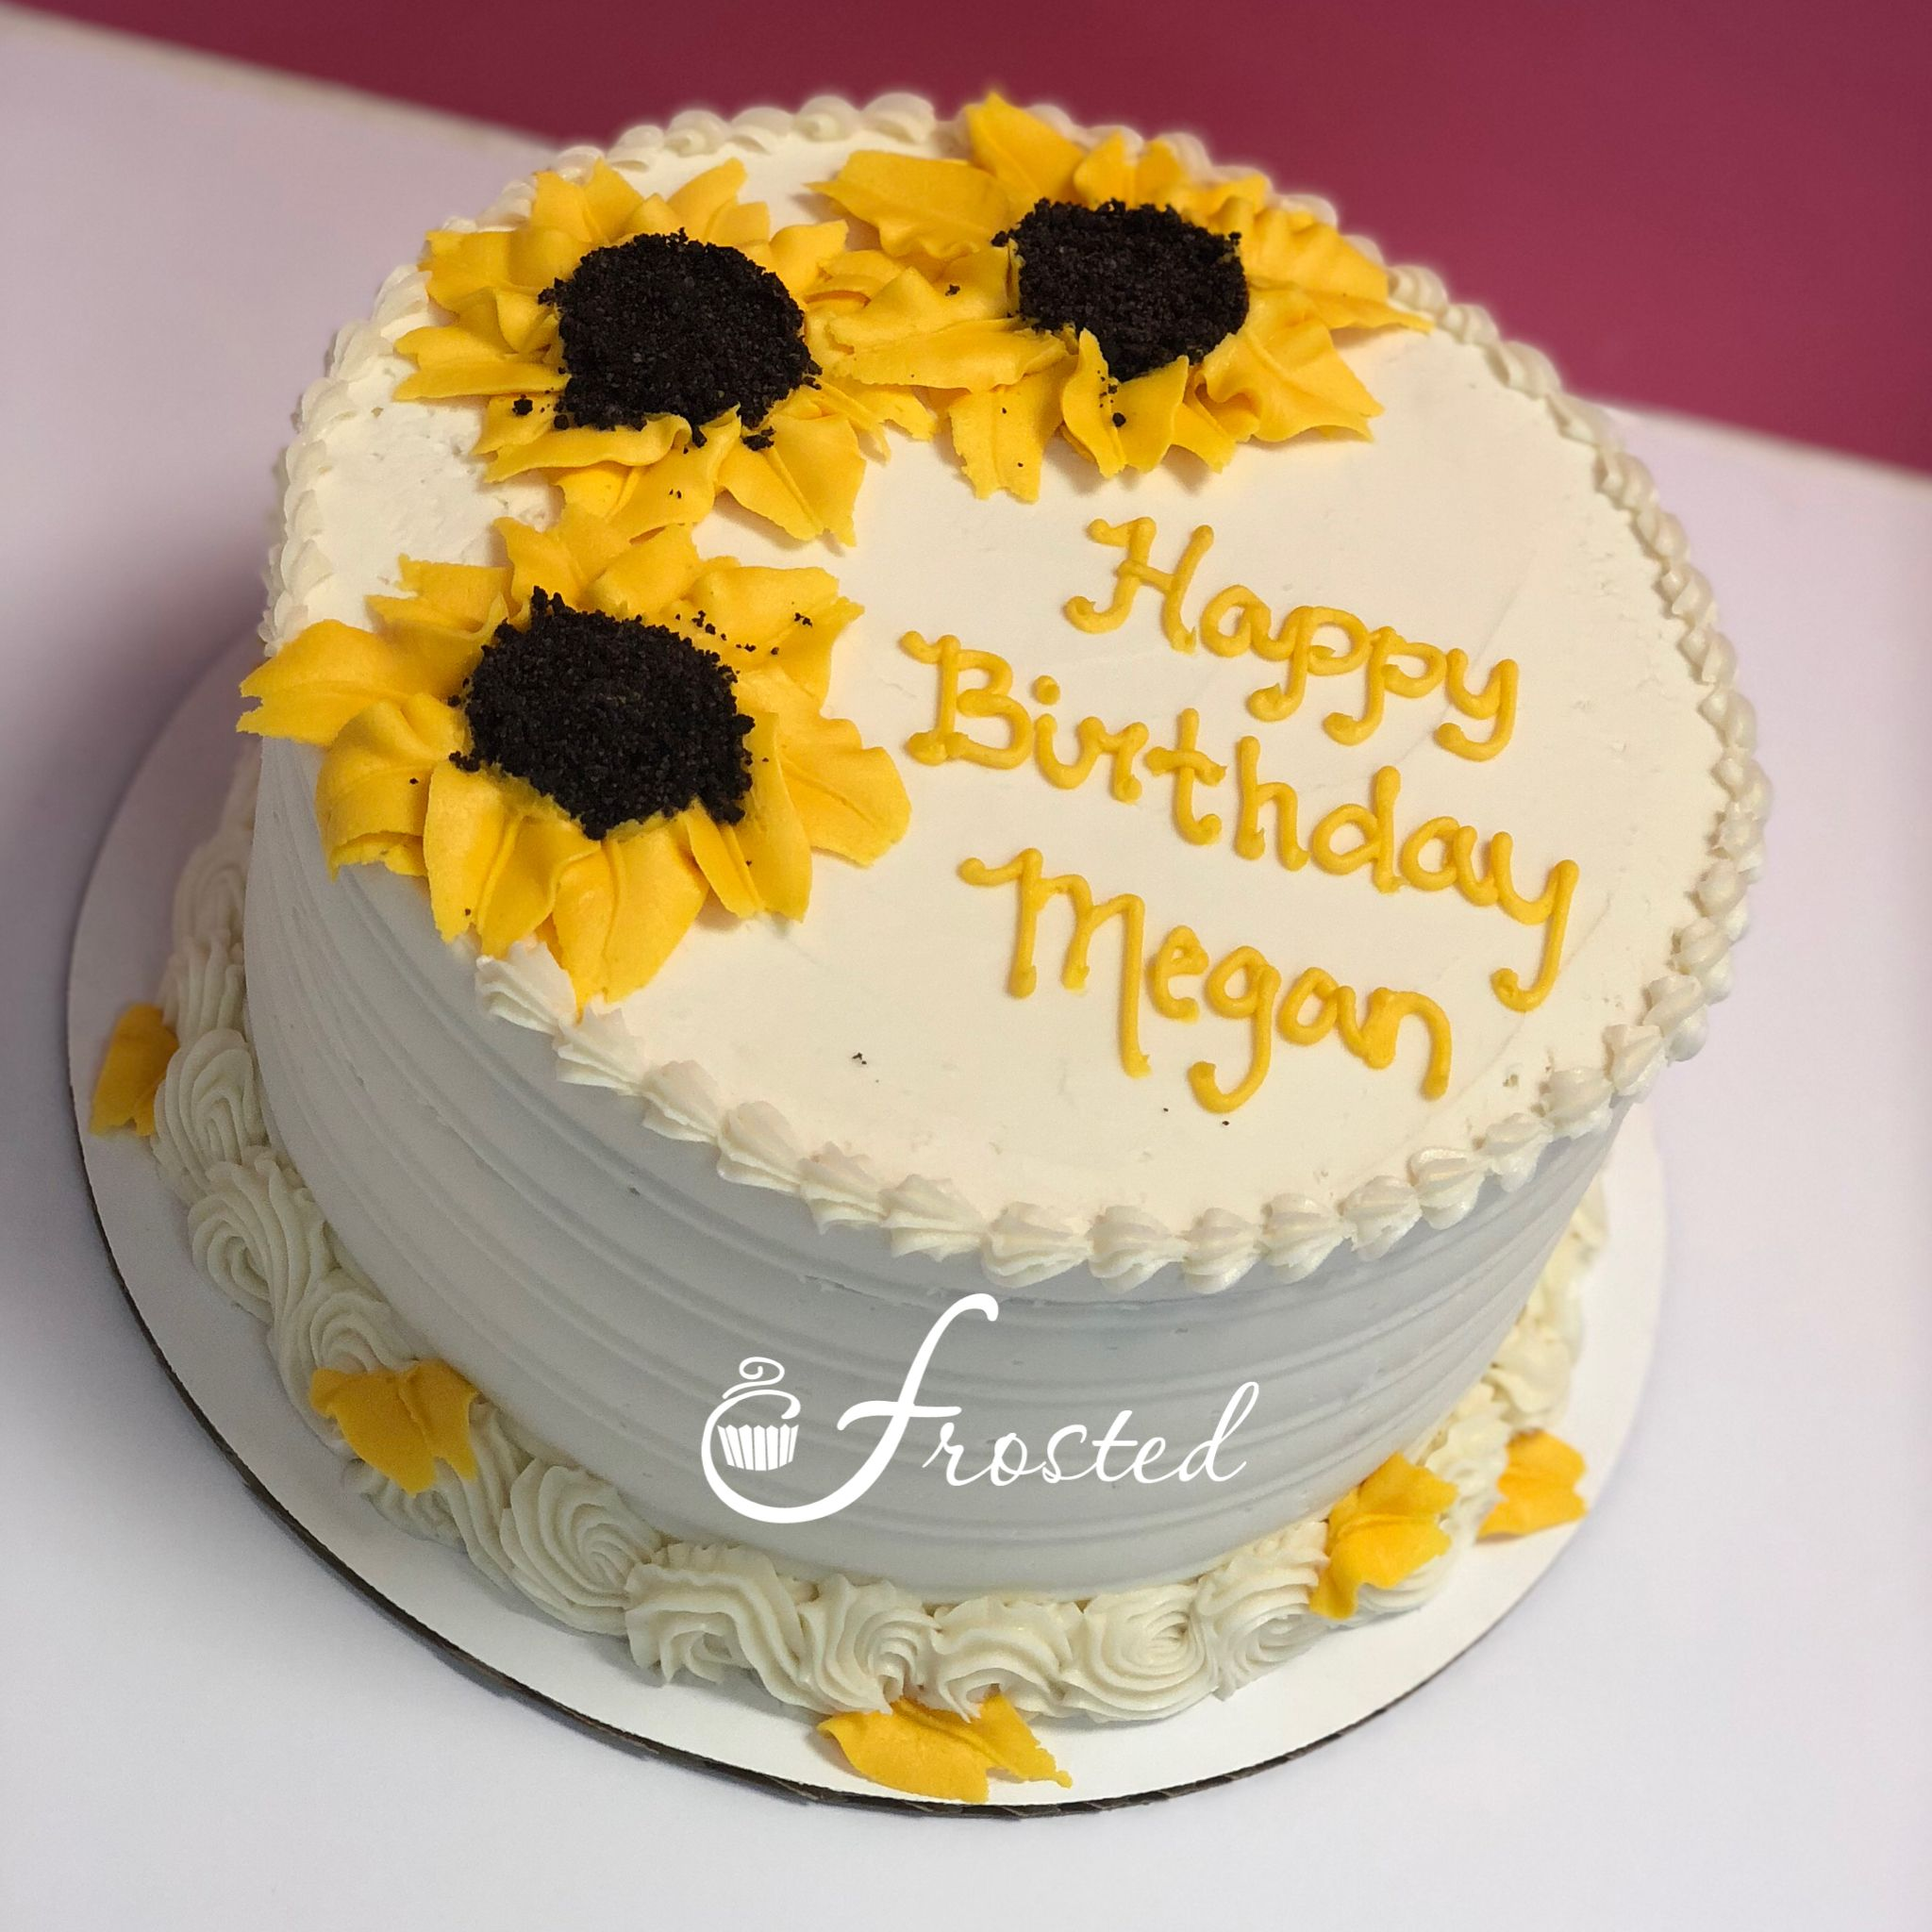 Stupendous Online Cake Decorating With Images Sunflower Birthday Cakes Funny Birthday Cards Online Necthendildamsfinfo